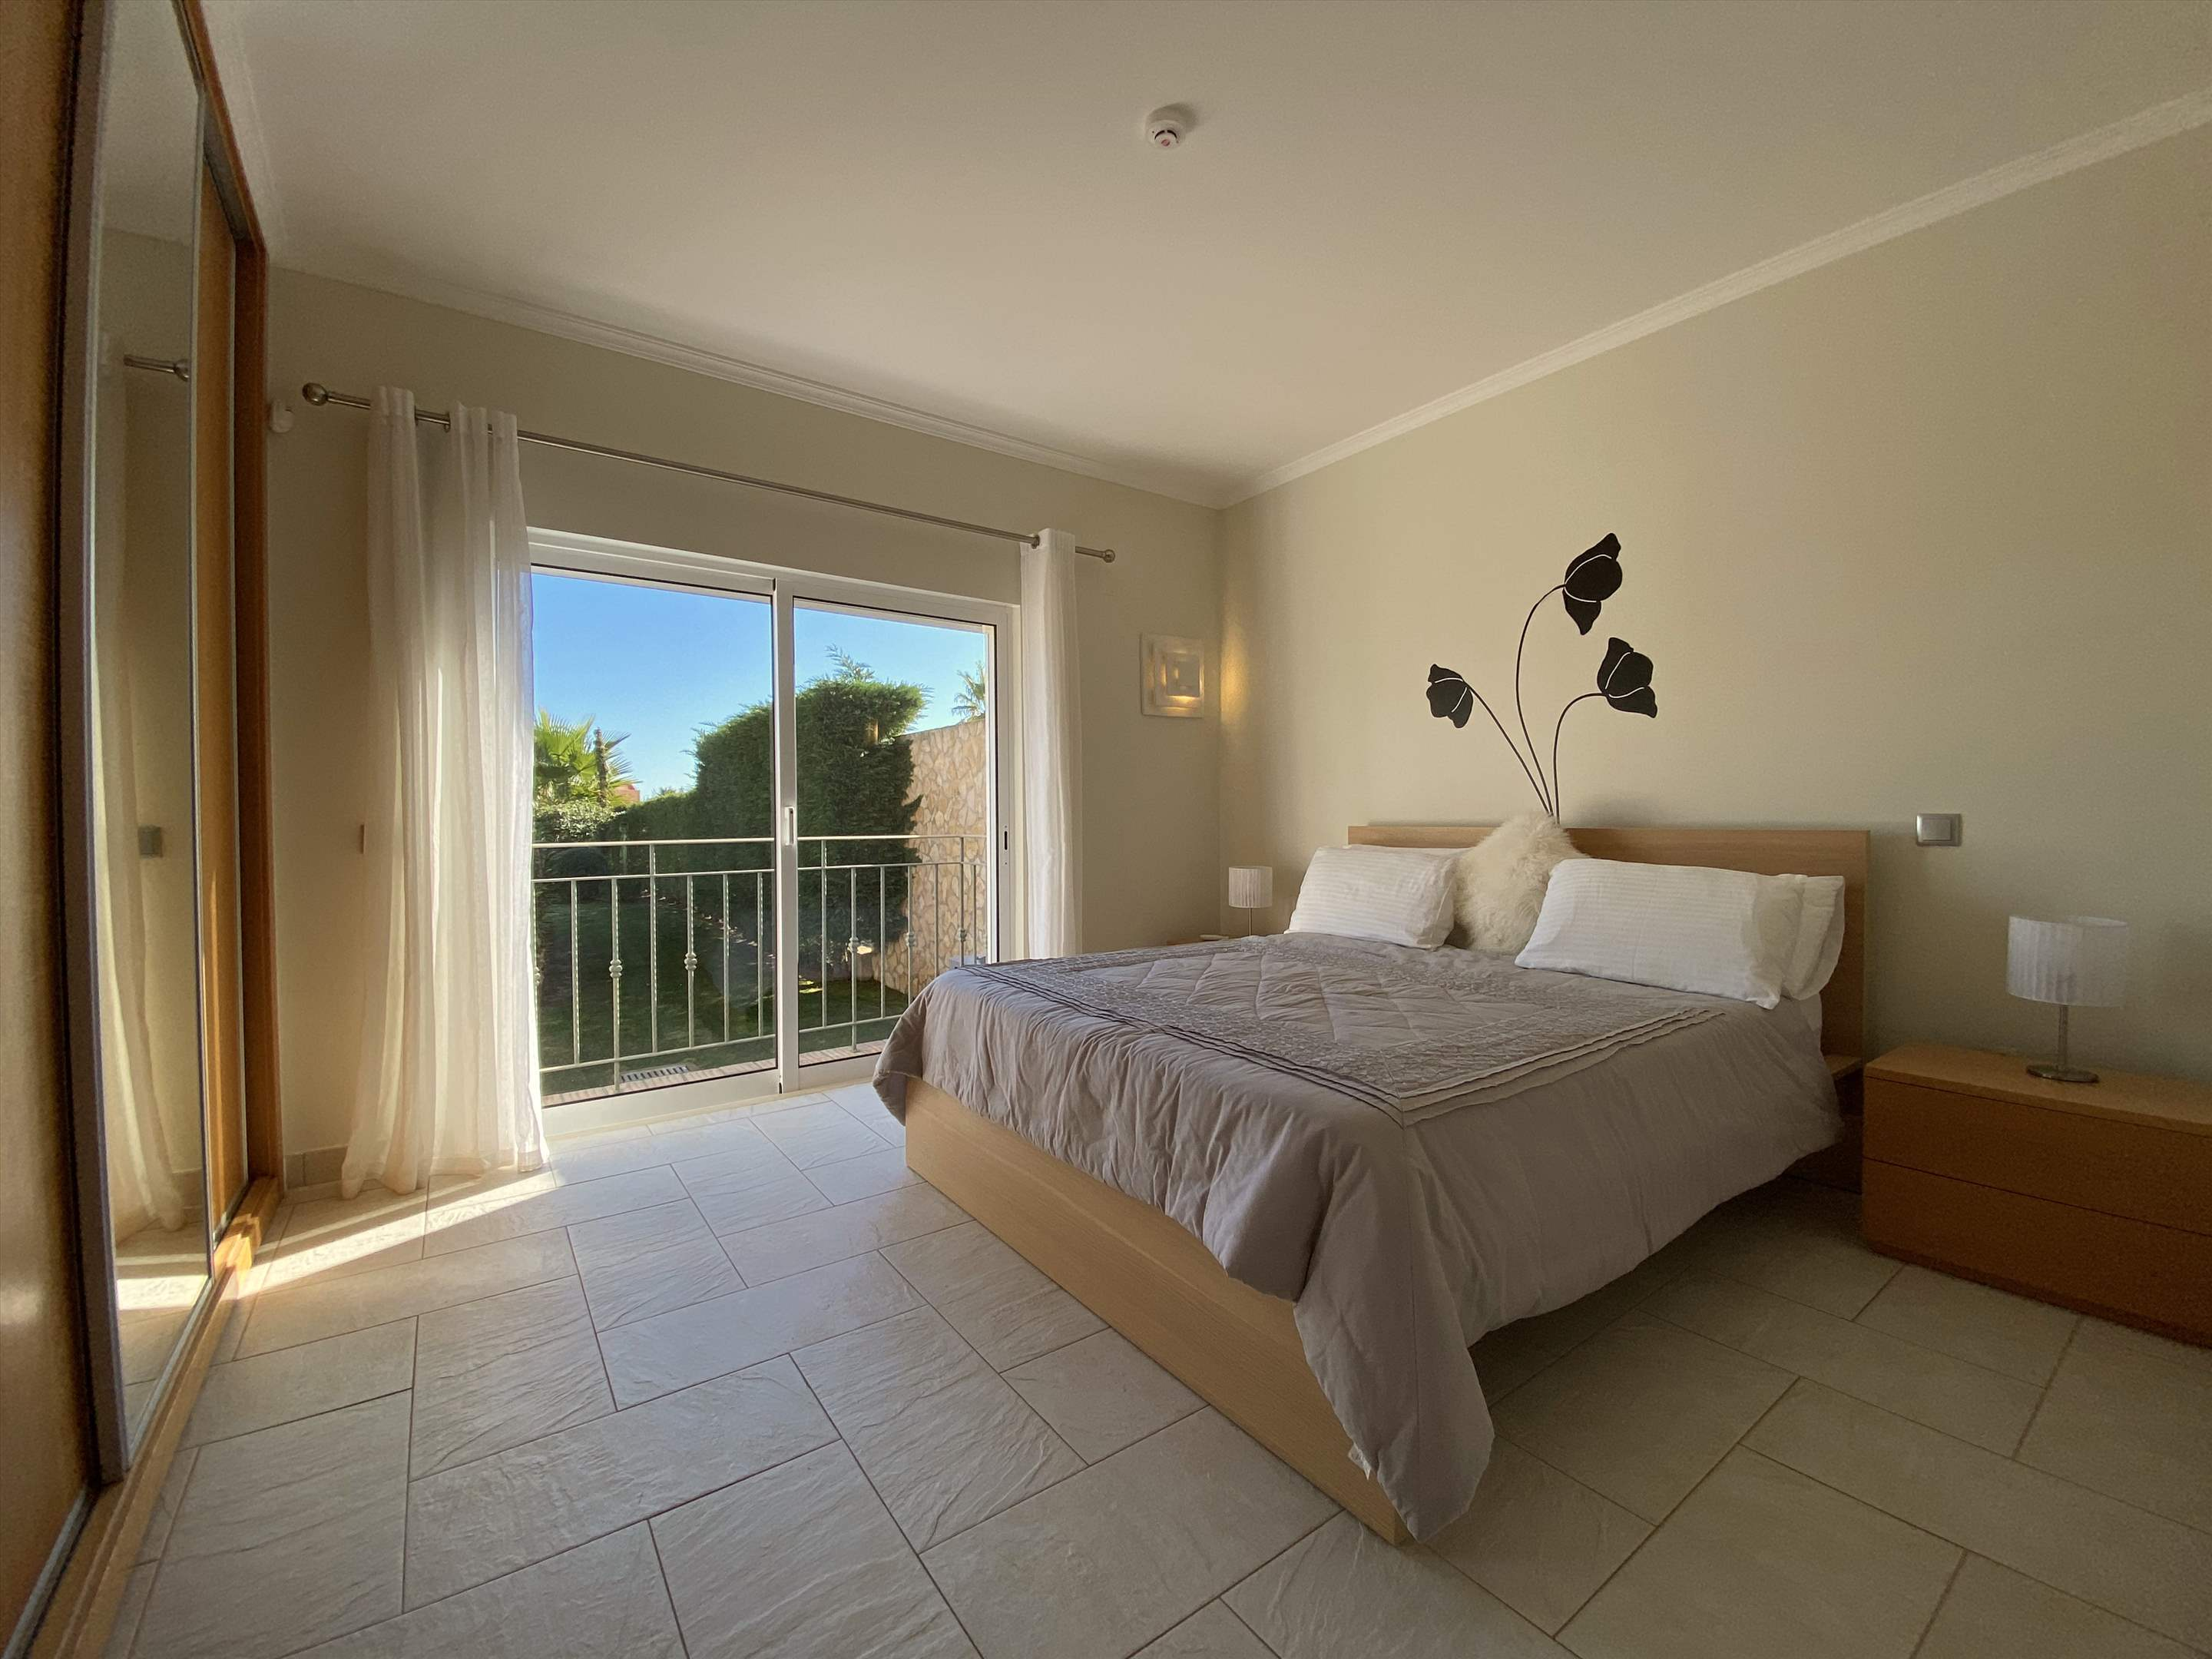 The Ocean Villas, 5 bedroom villa in Gale, Vale da Parra and Guia, Algarve Photo #23